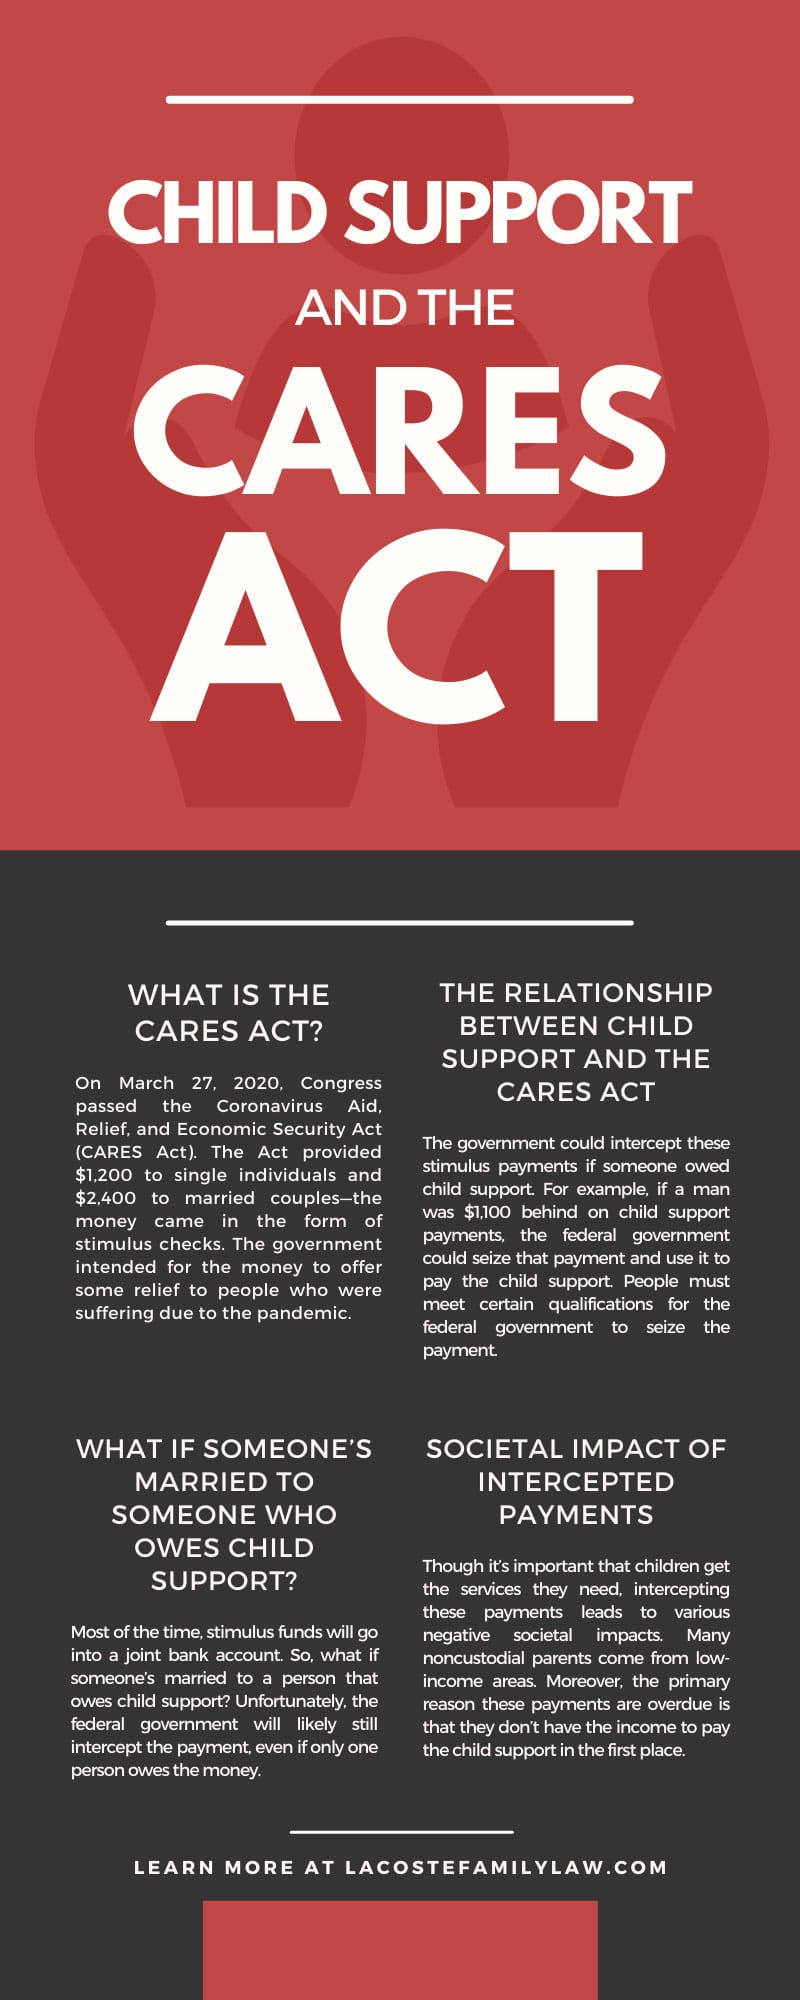 Child Support and the CARES Act